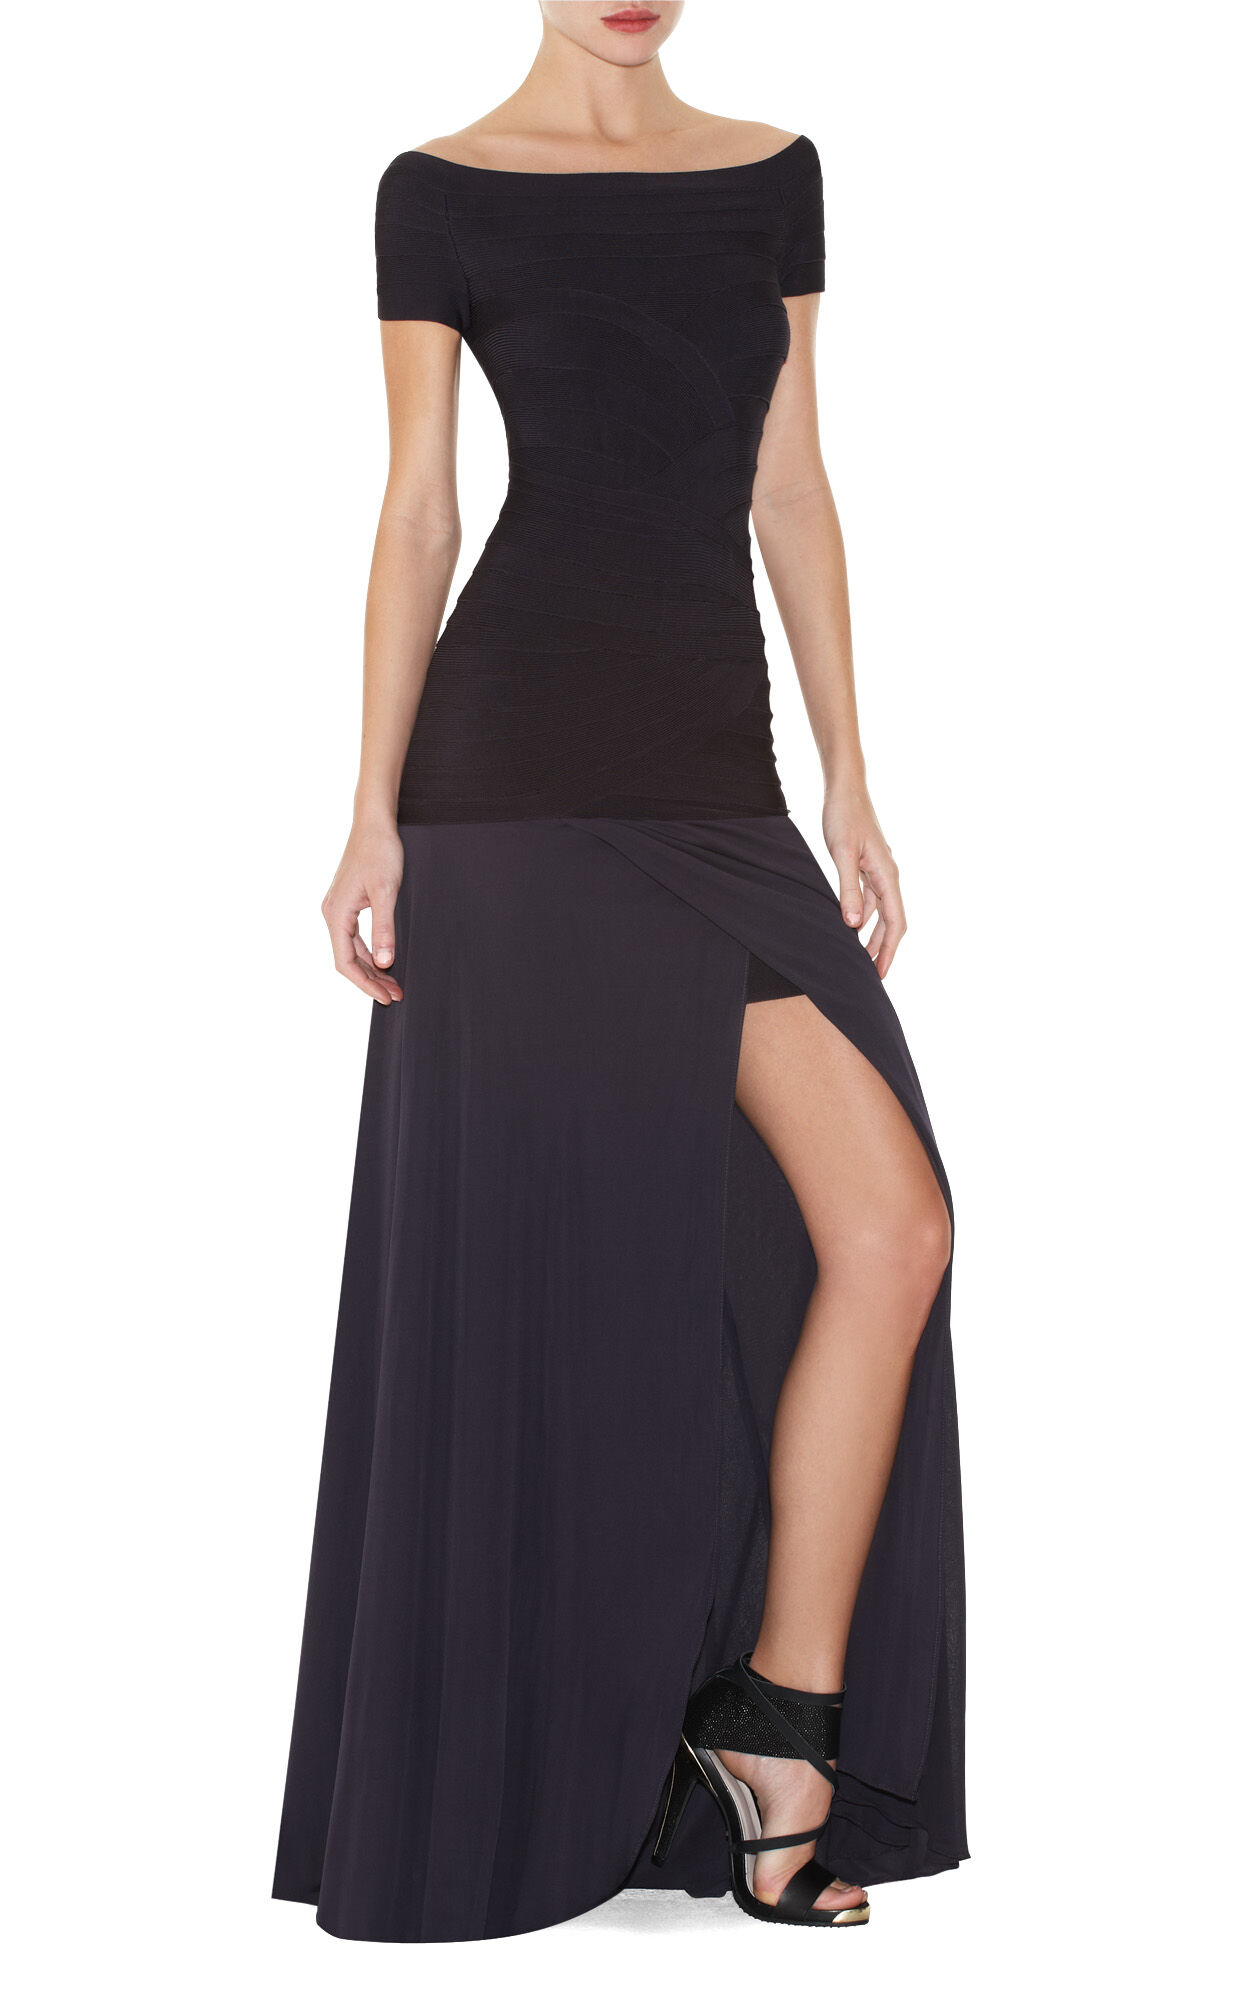 Erica Silky Jersey Gown